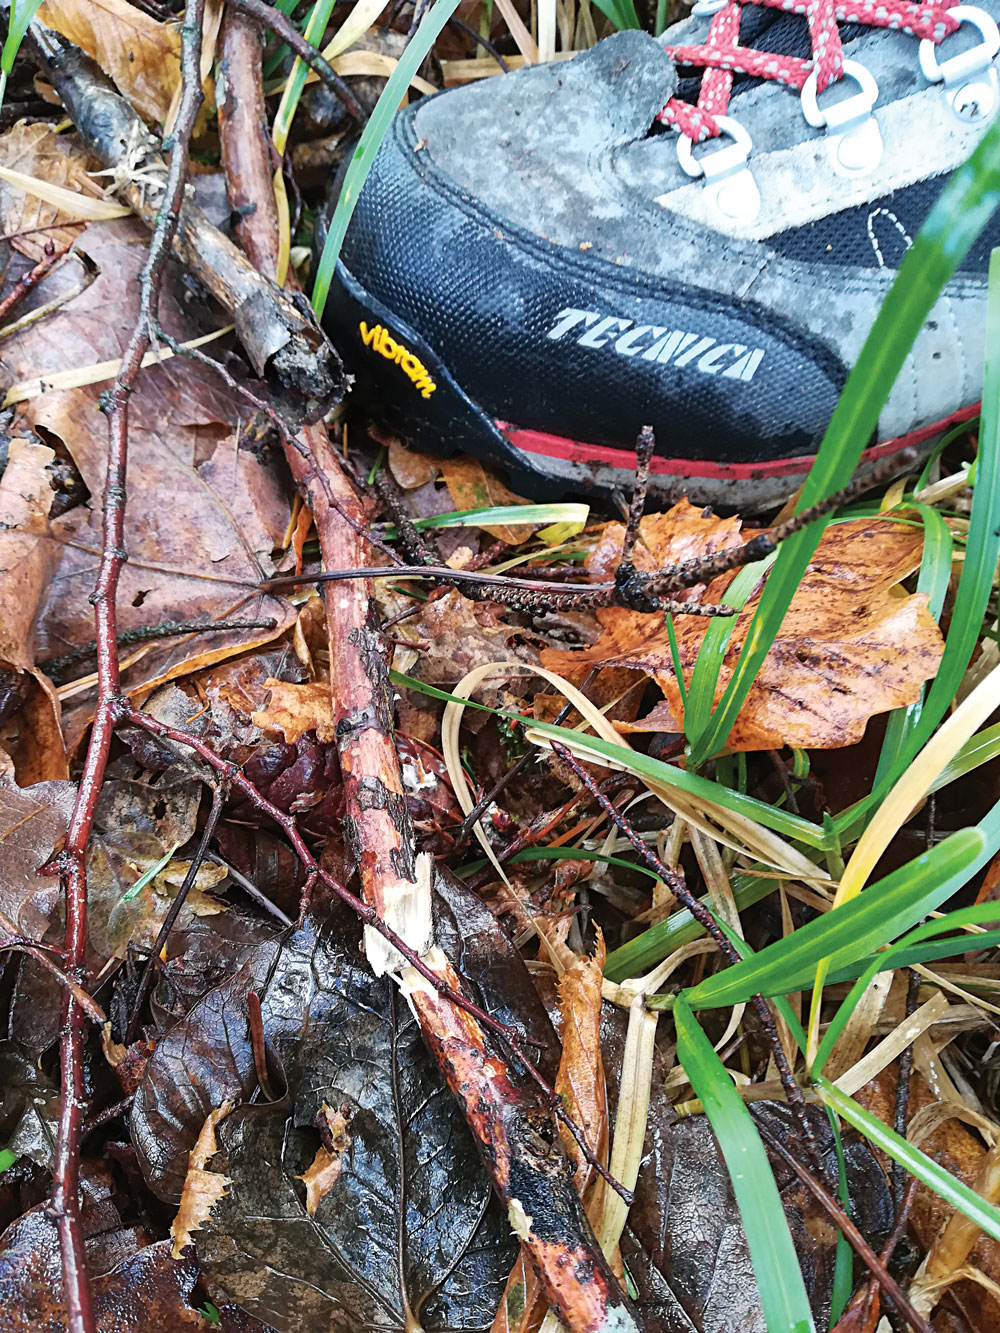 Stepping on wet and rotten twigs could cause one or more breaks.